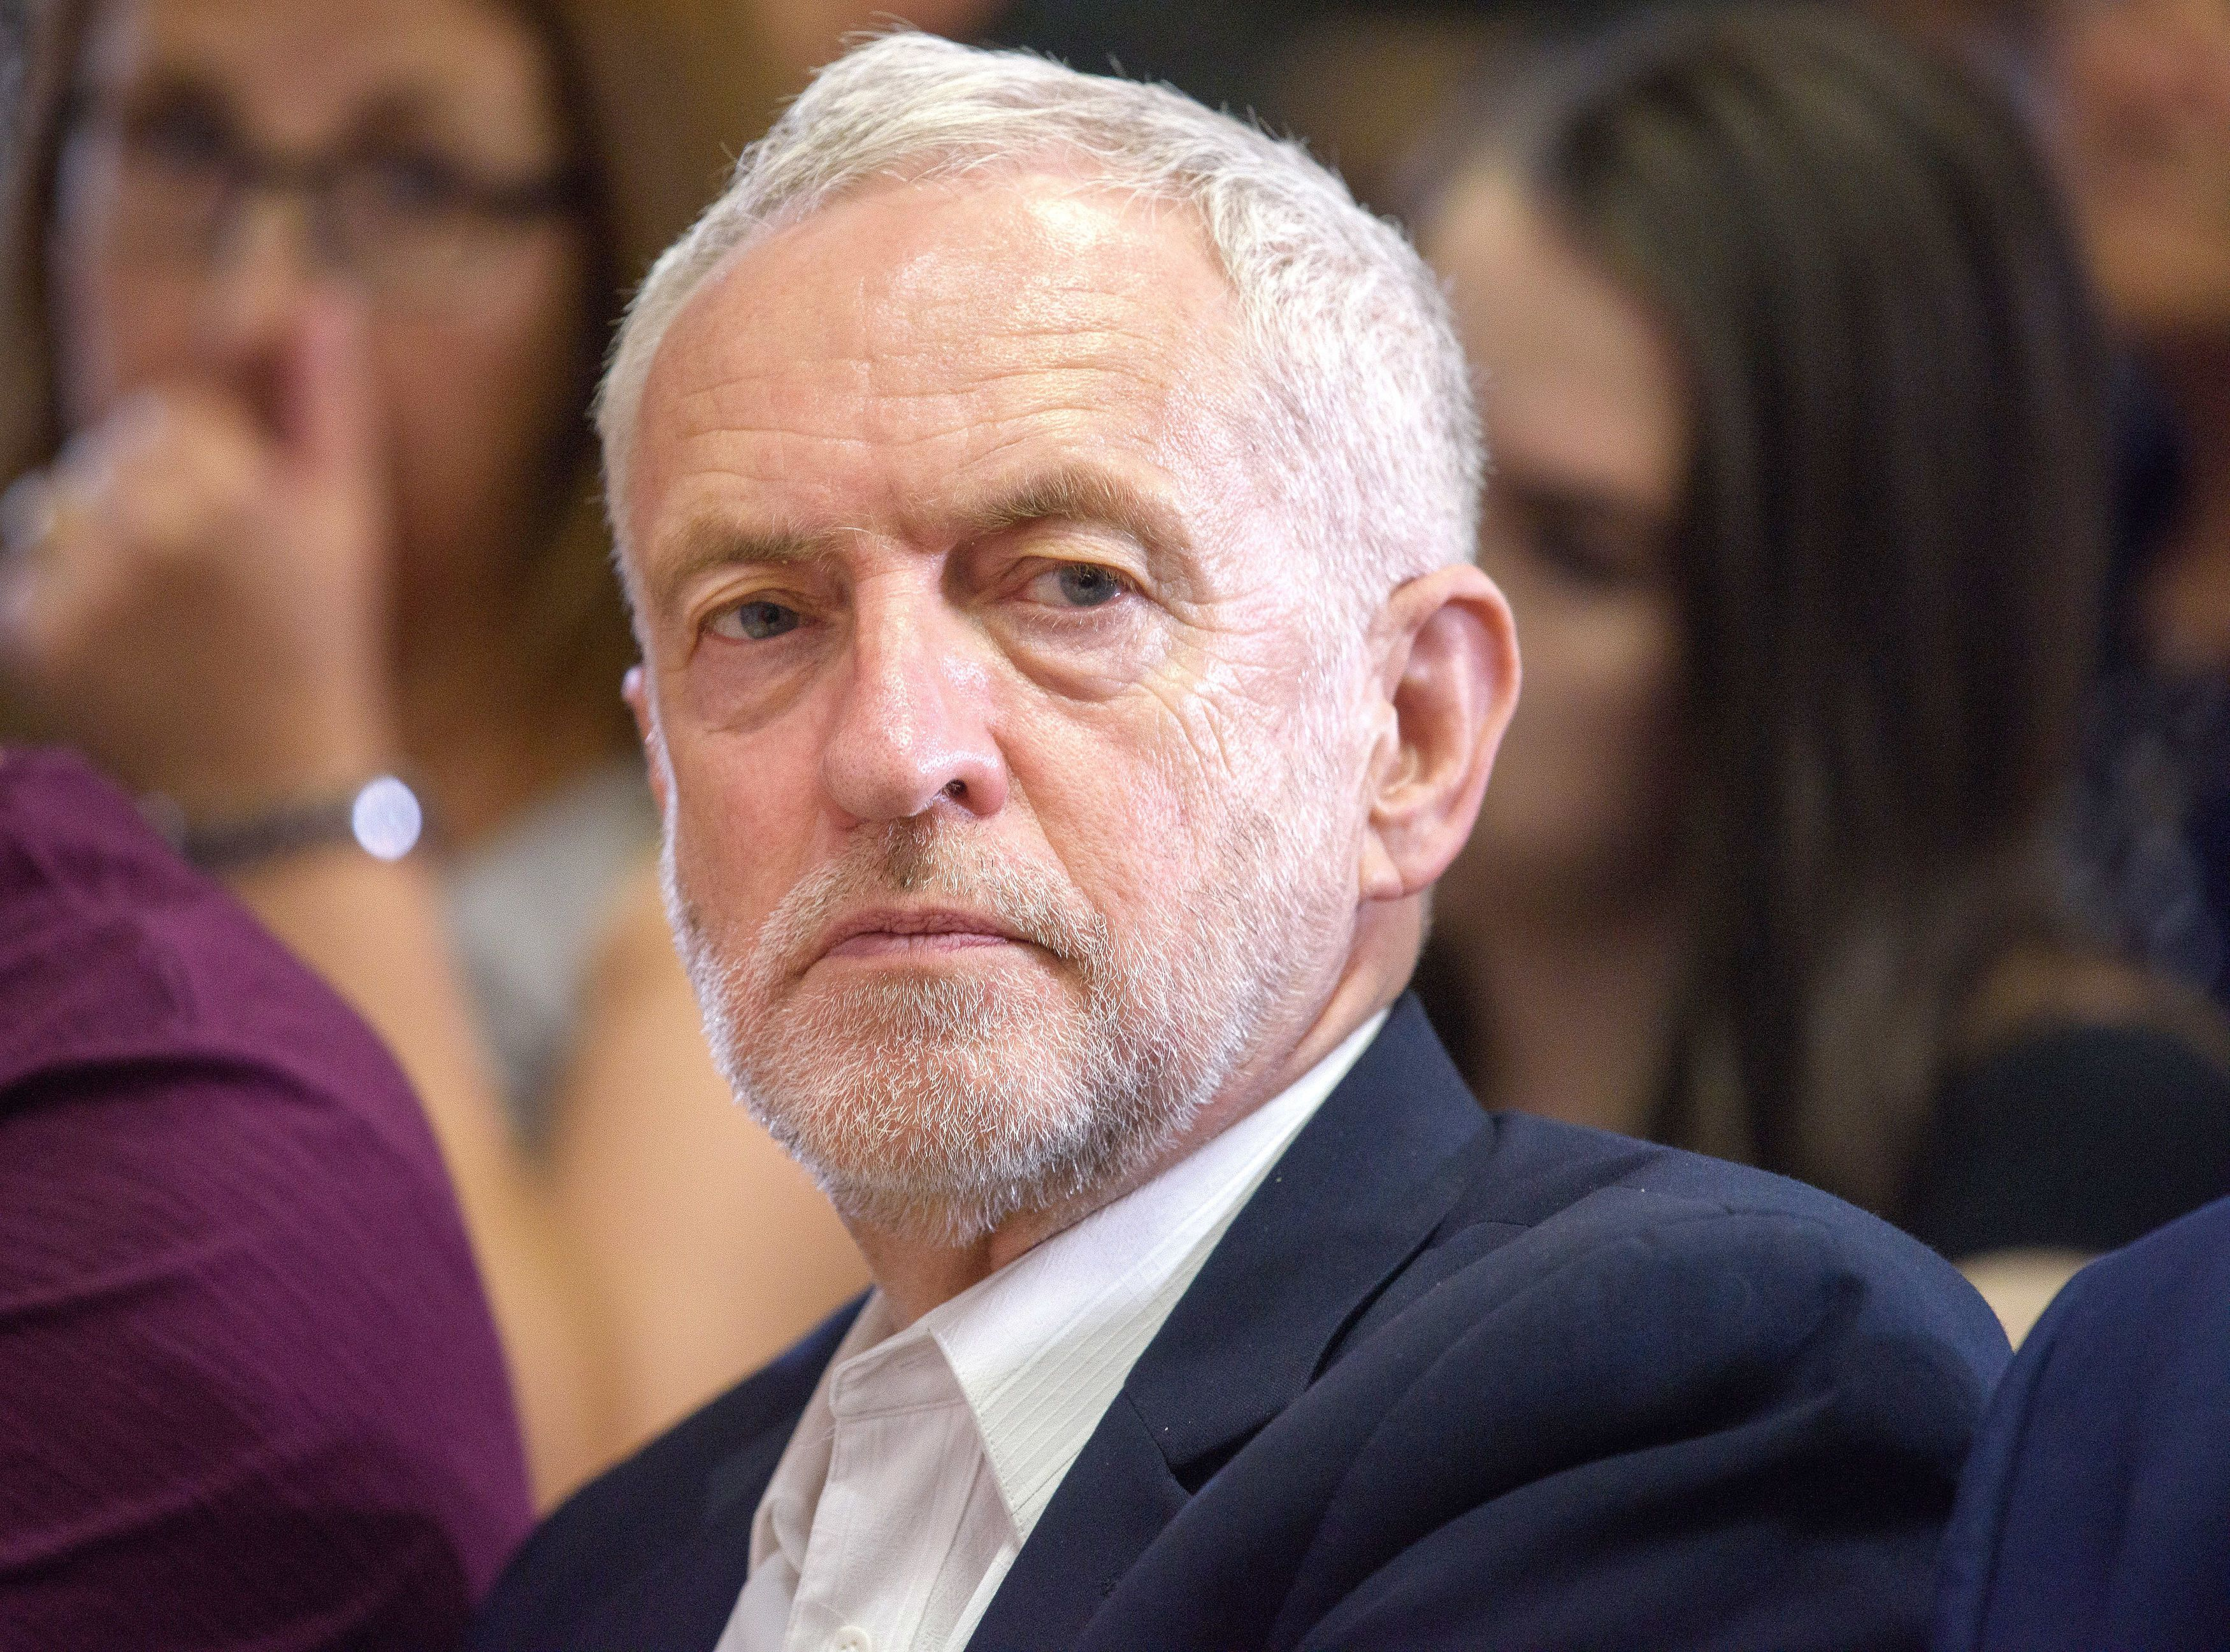 Jeremy Corbyn Speech To Jewish Community At Museum Called